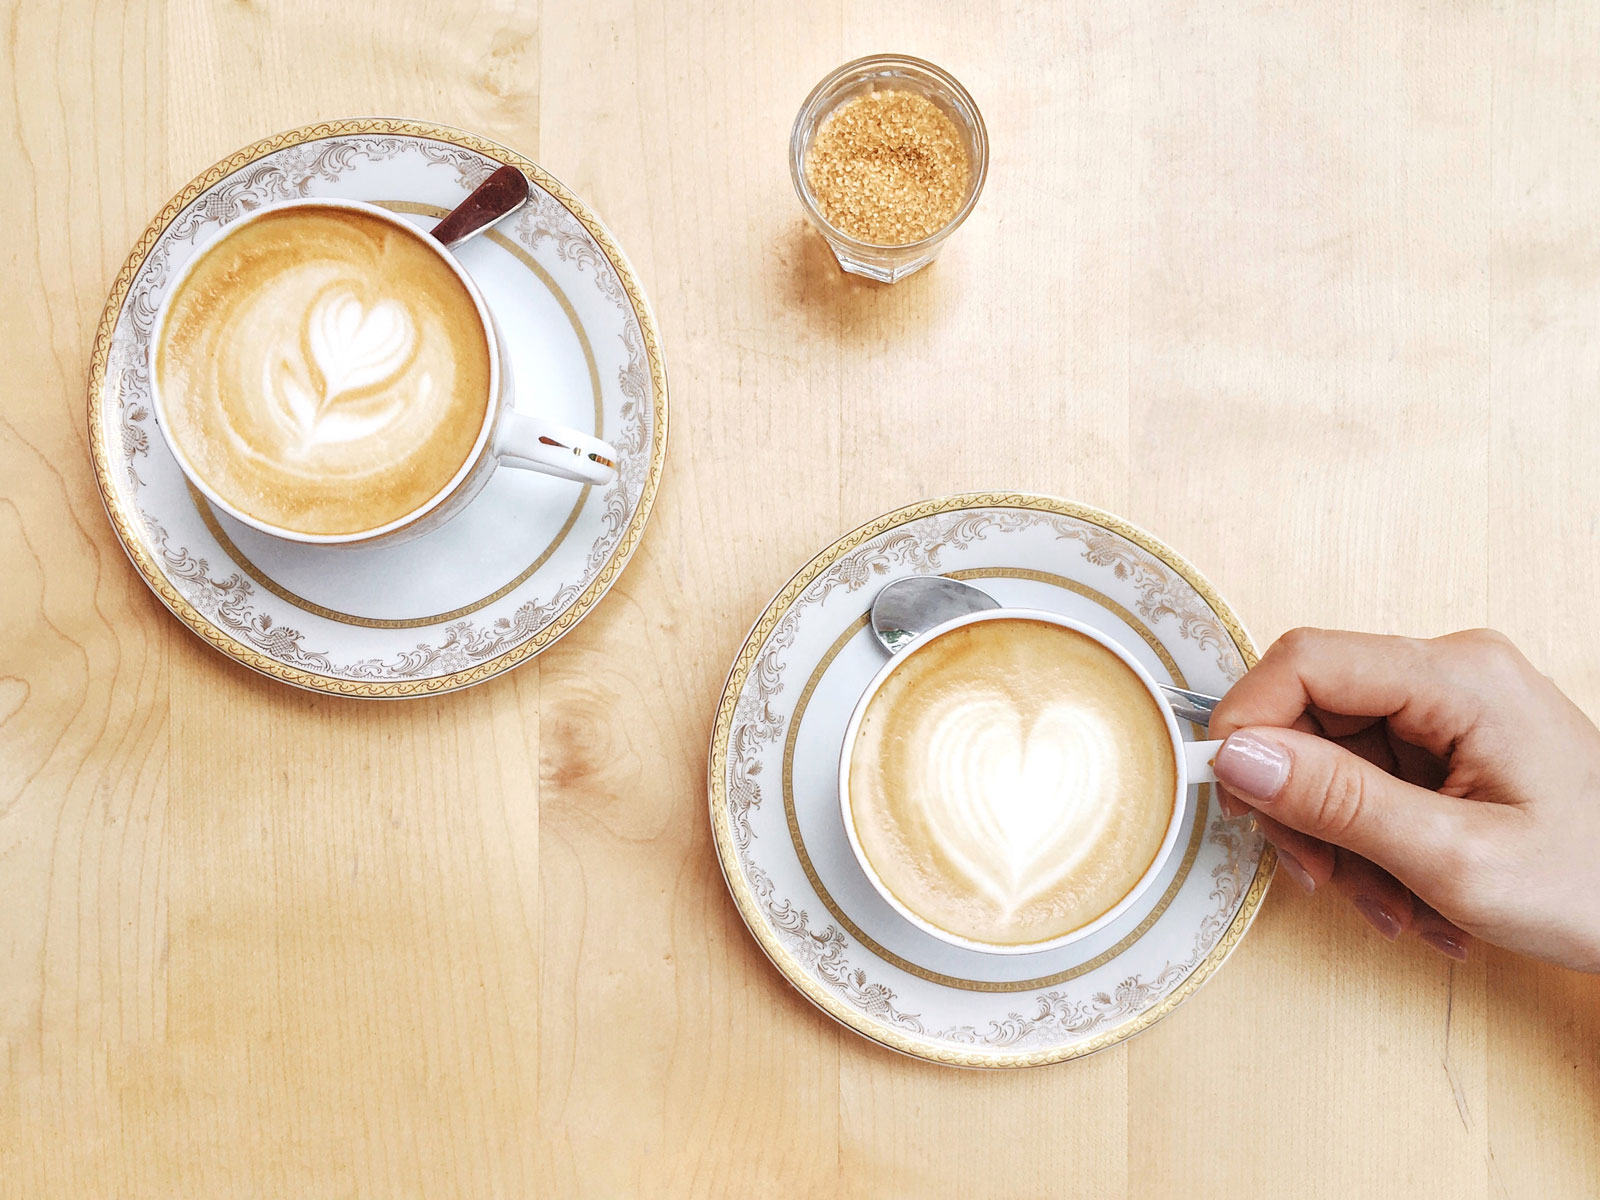 Coffee Consumption Helps Lower Risk of Early Death